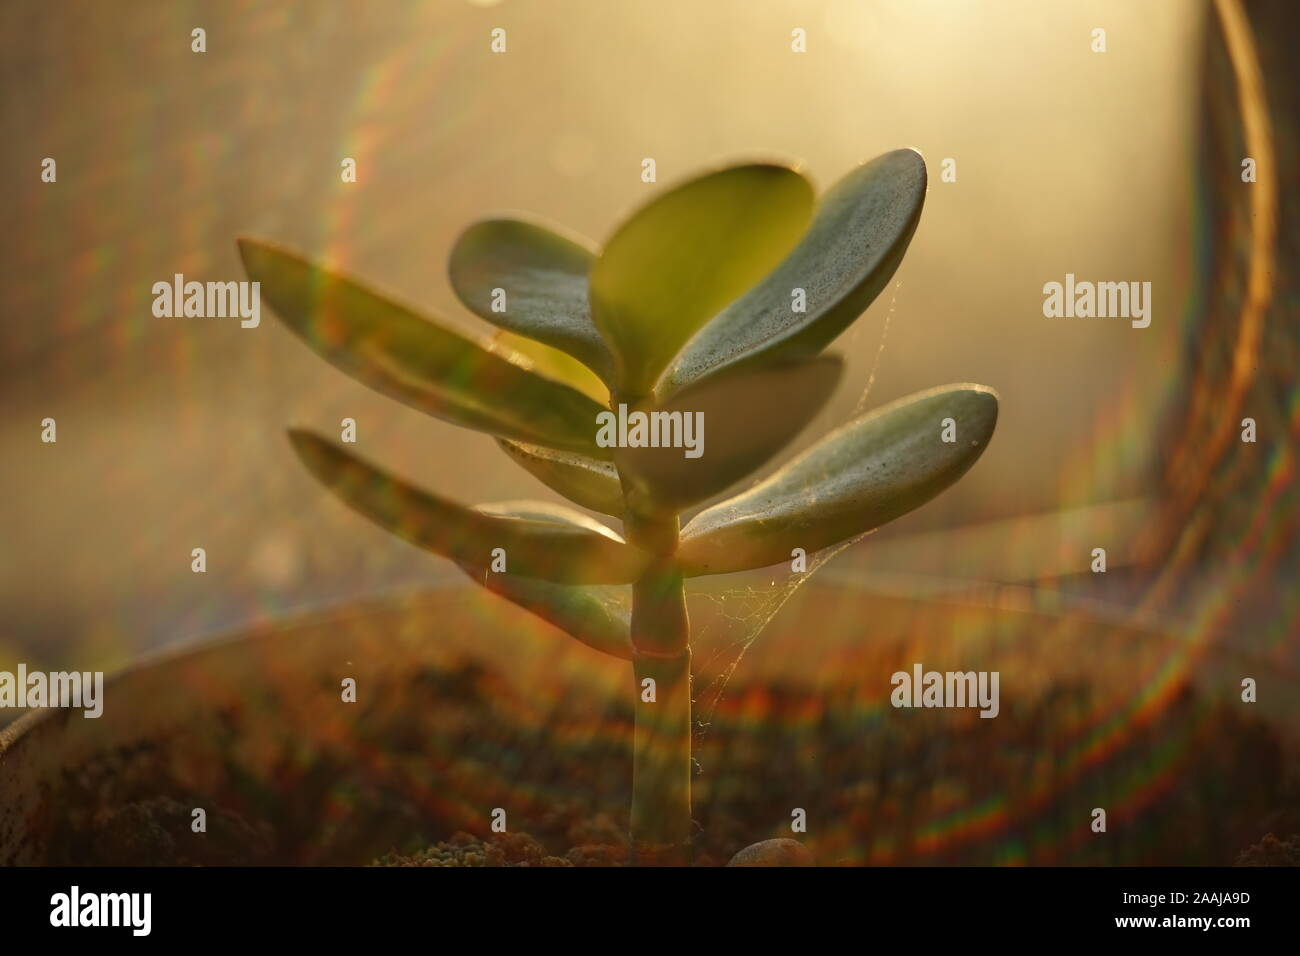 Young sprout money tree. Crassula flower closeup. Stock Photo